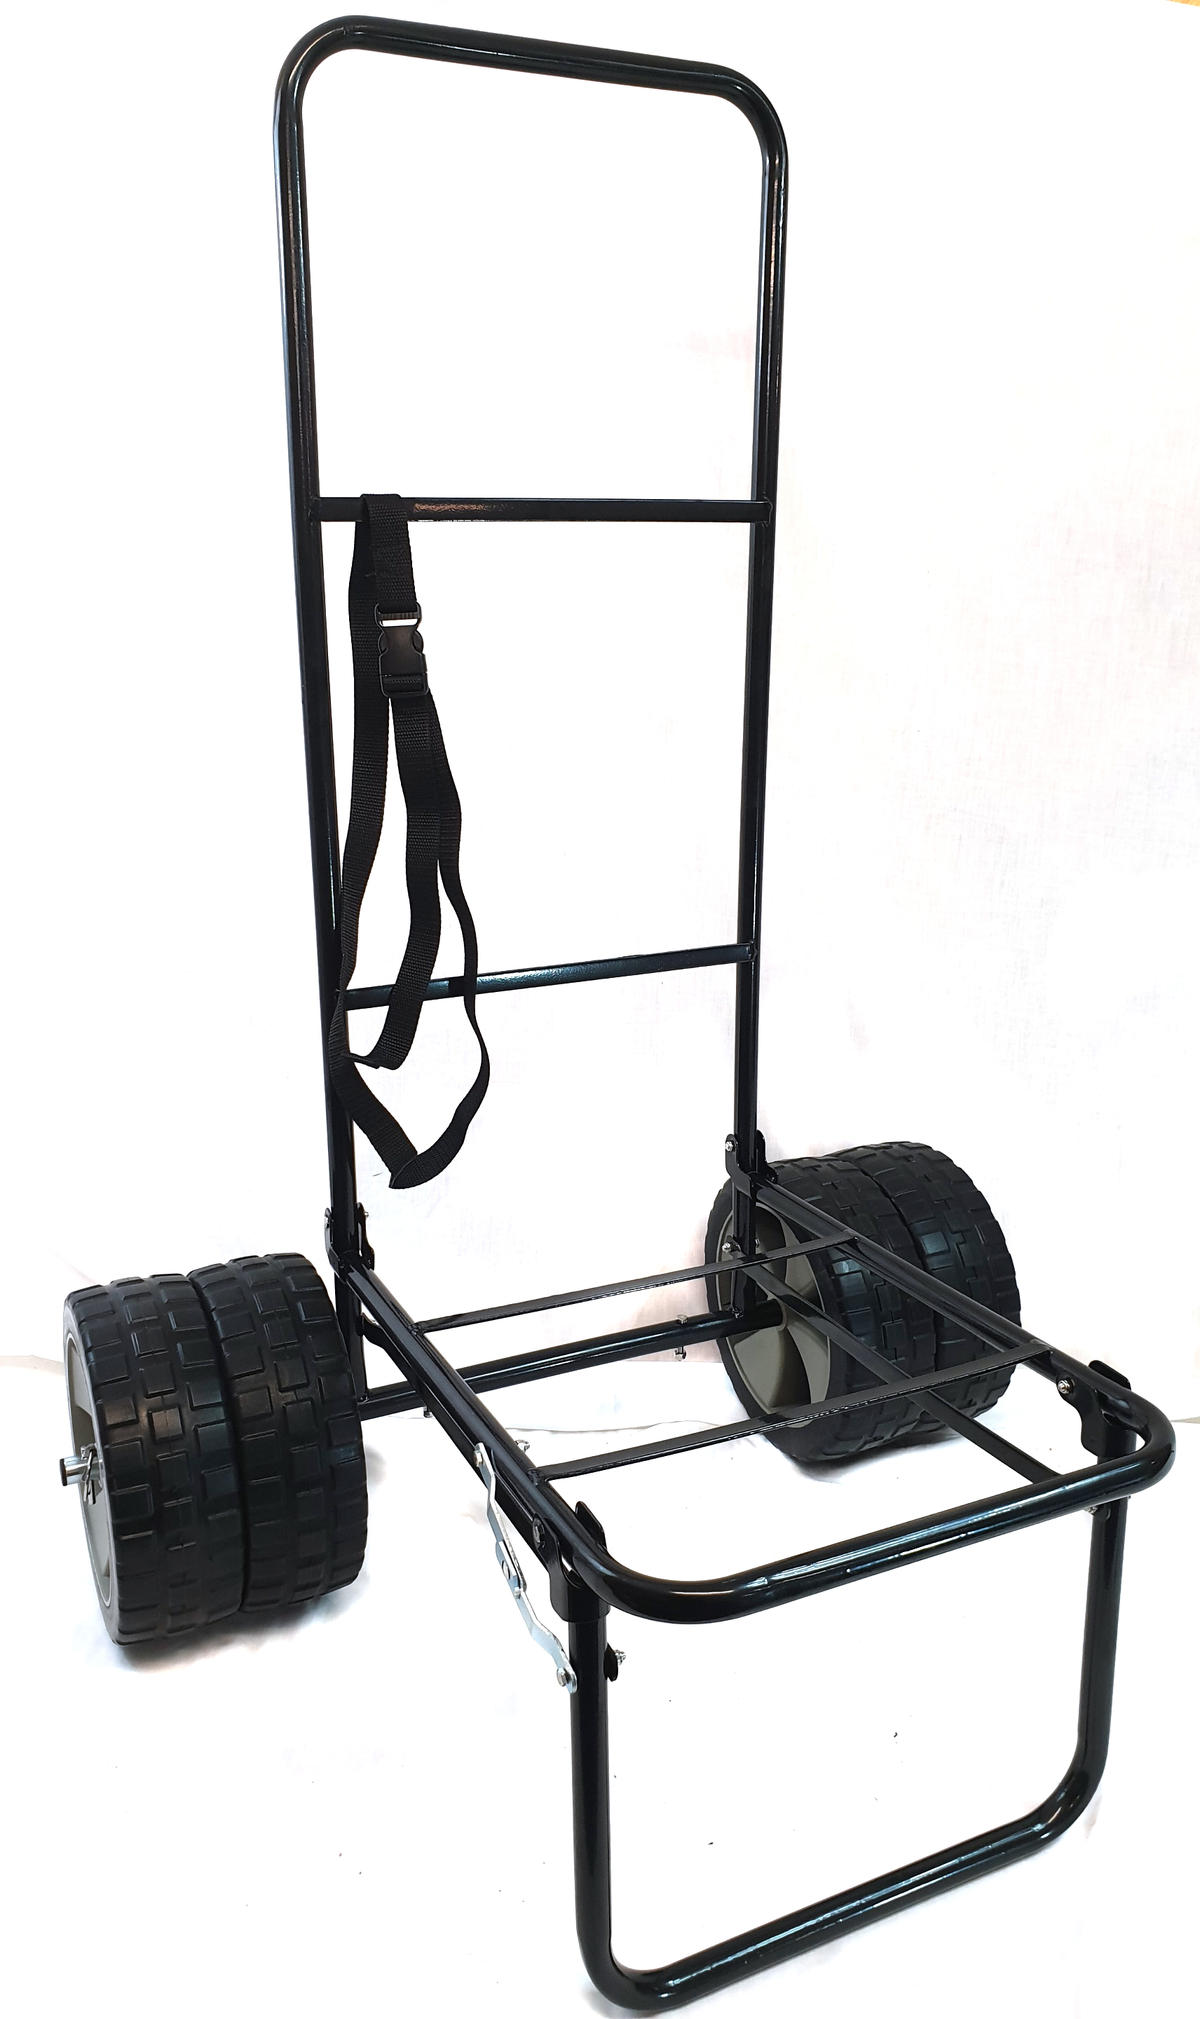 BISON FOLDING FISHING SEATBOX TROLLEY